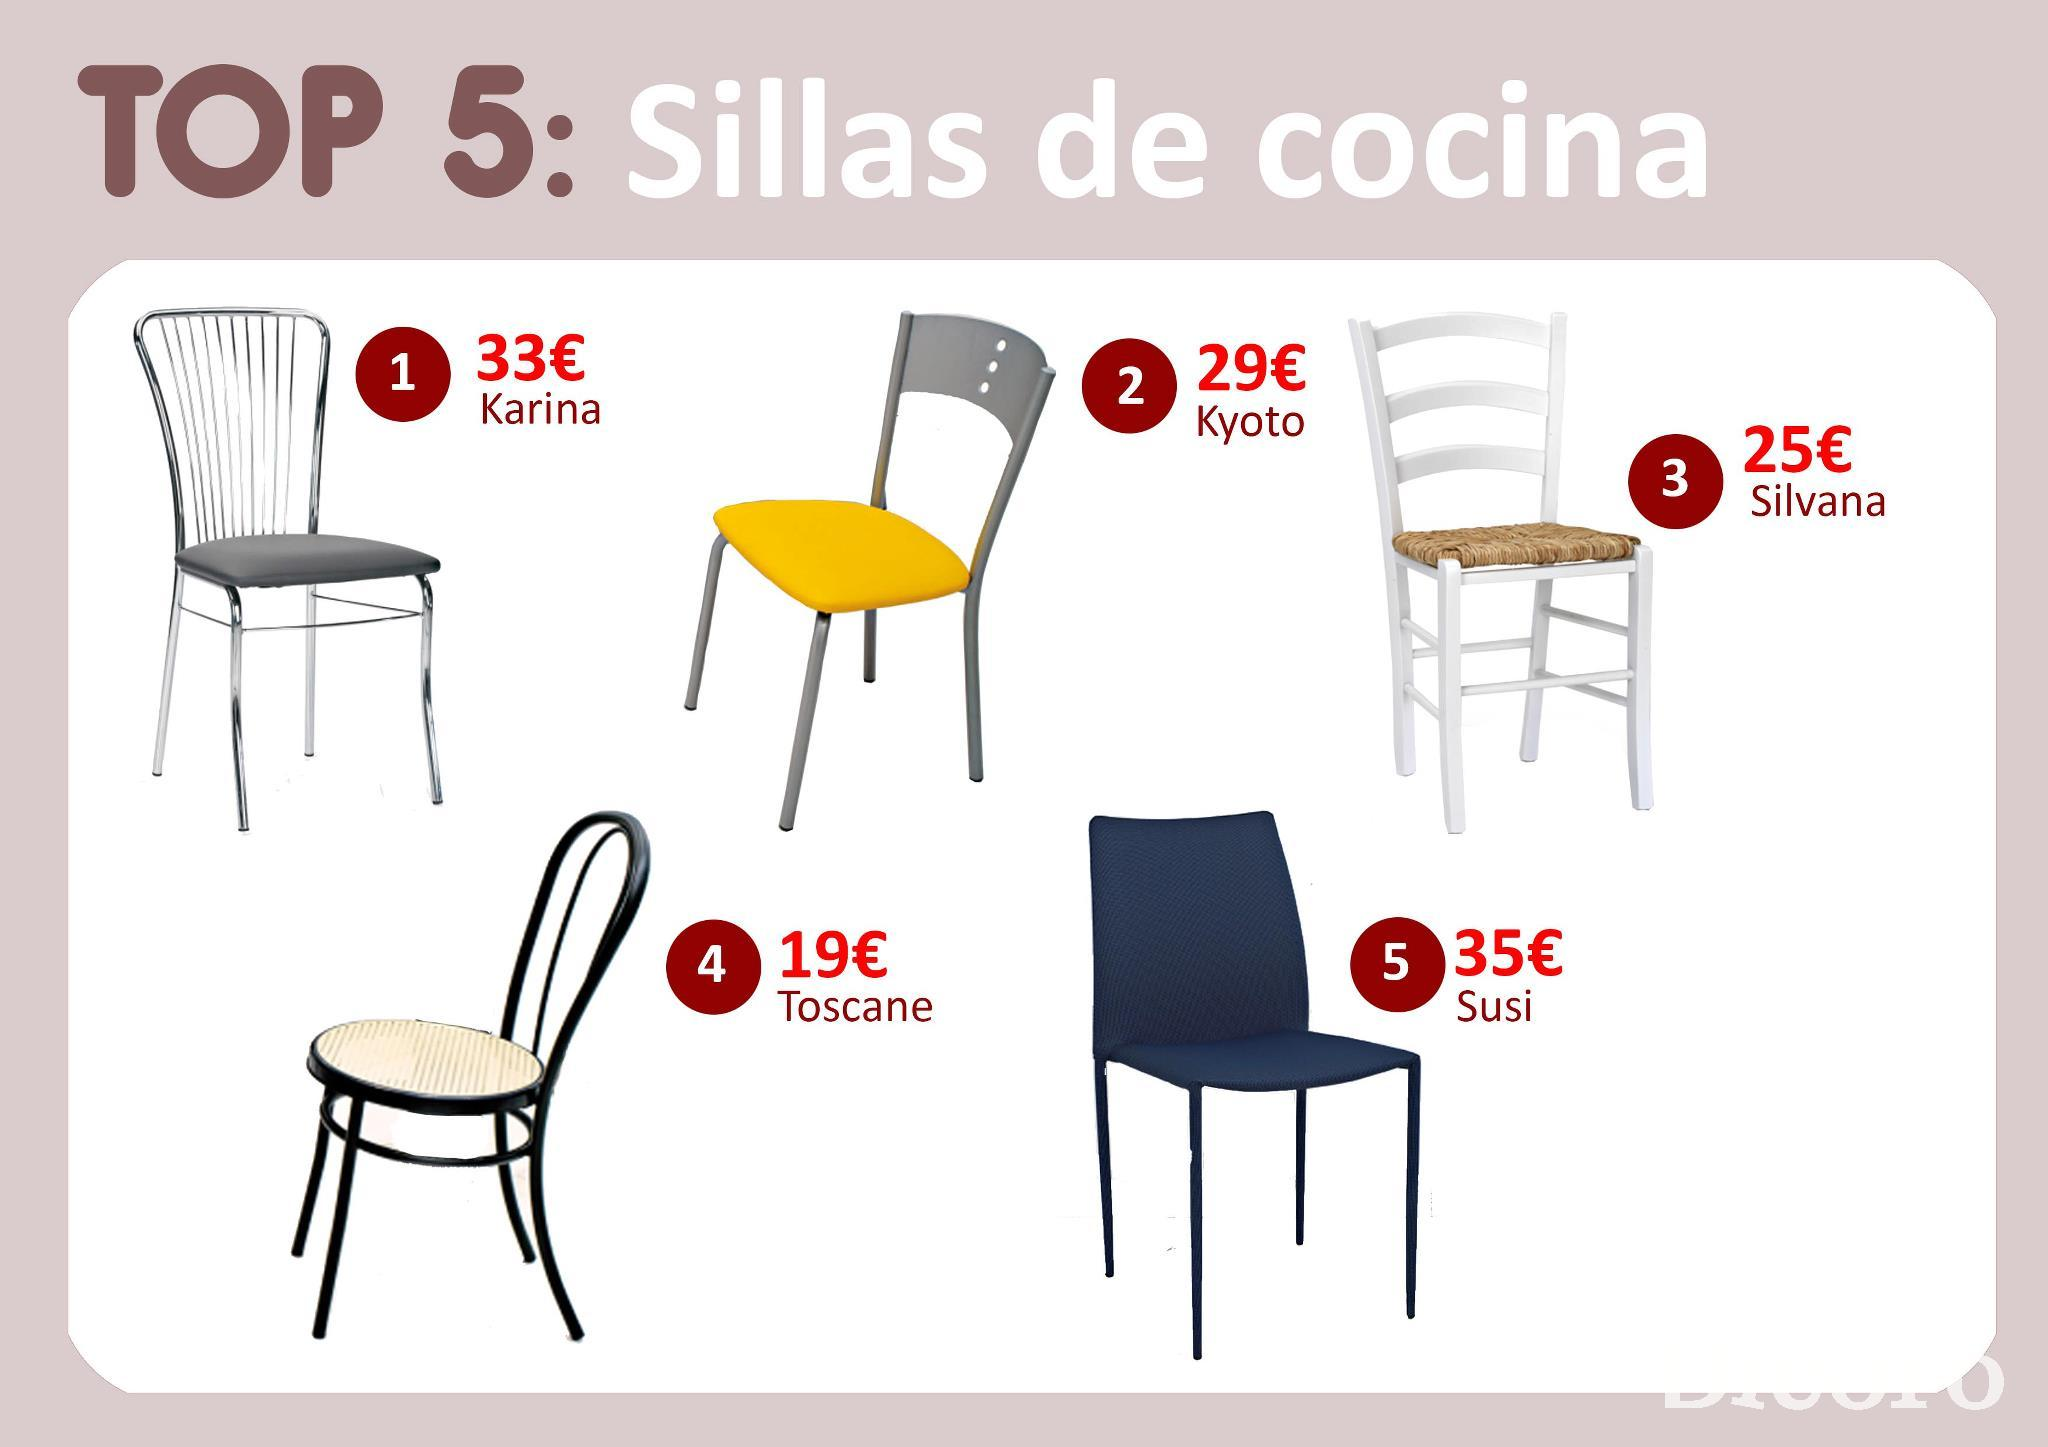 Top 5 sillas blog con ideas de decoracion ideas para for Sillas transparentes para cocina